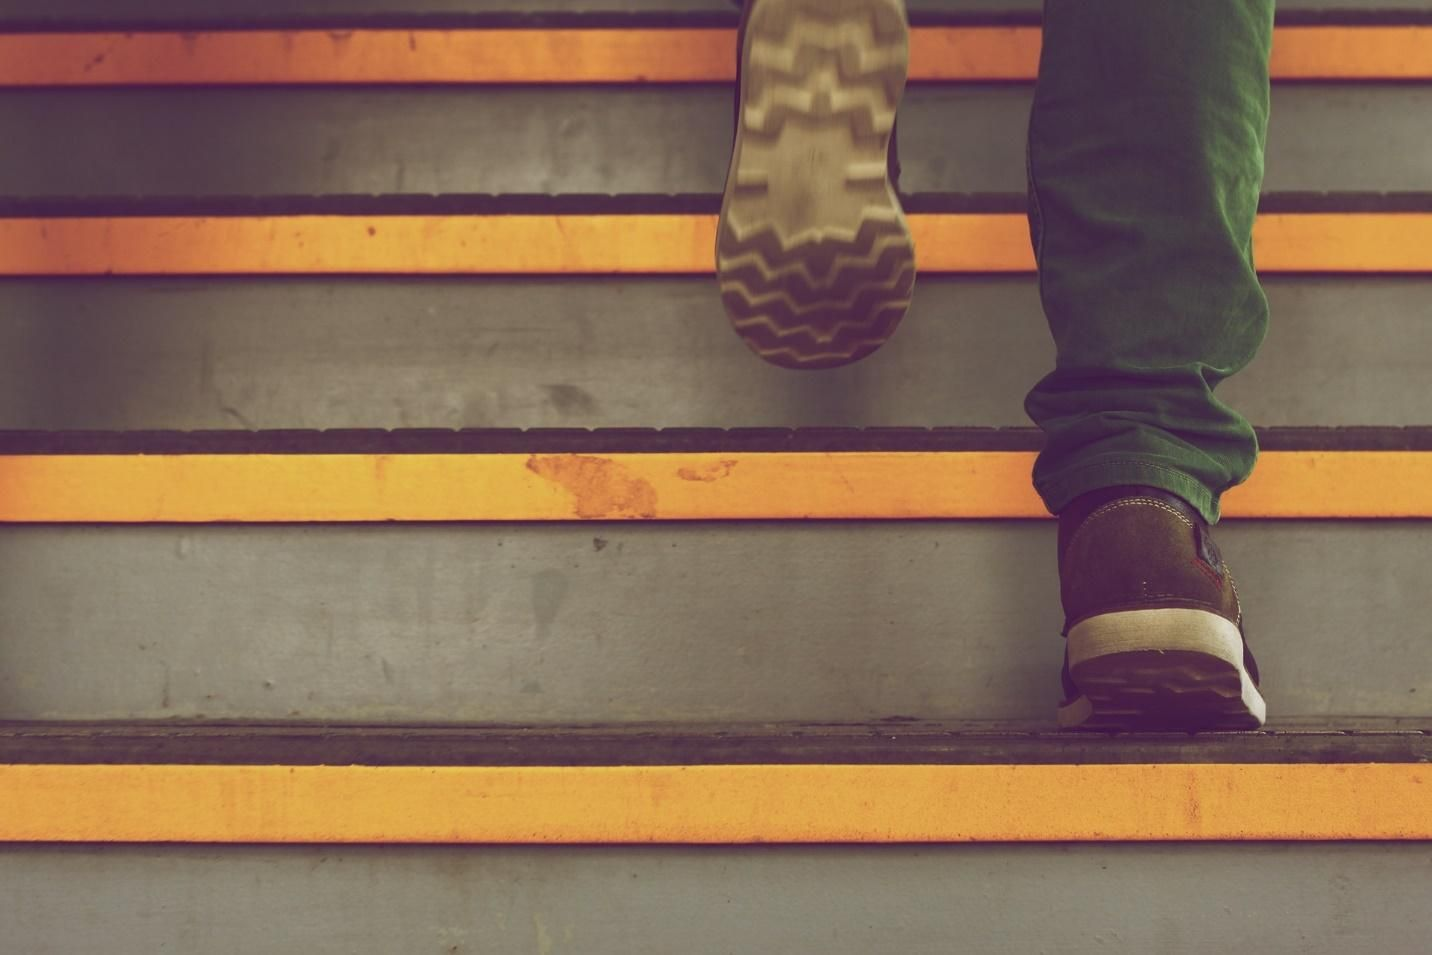 person walking up steps as part of a process